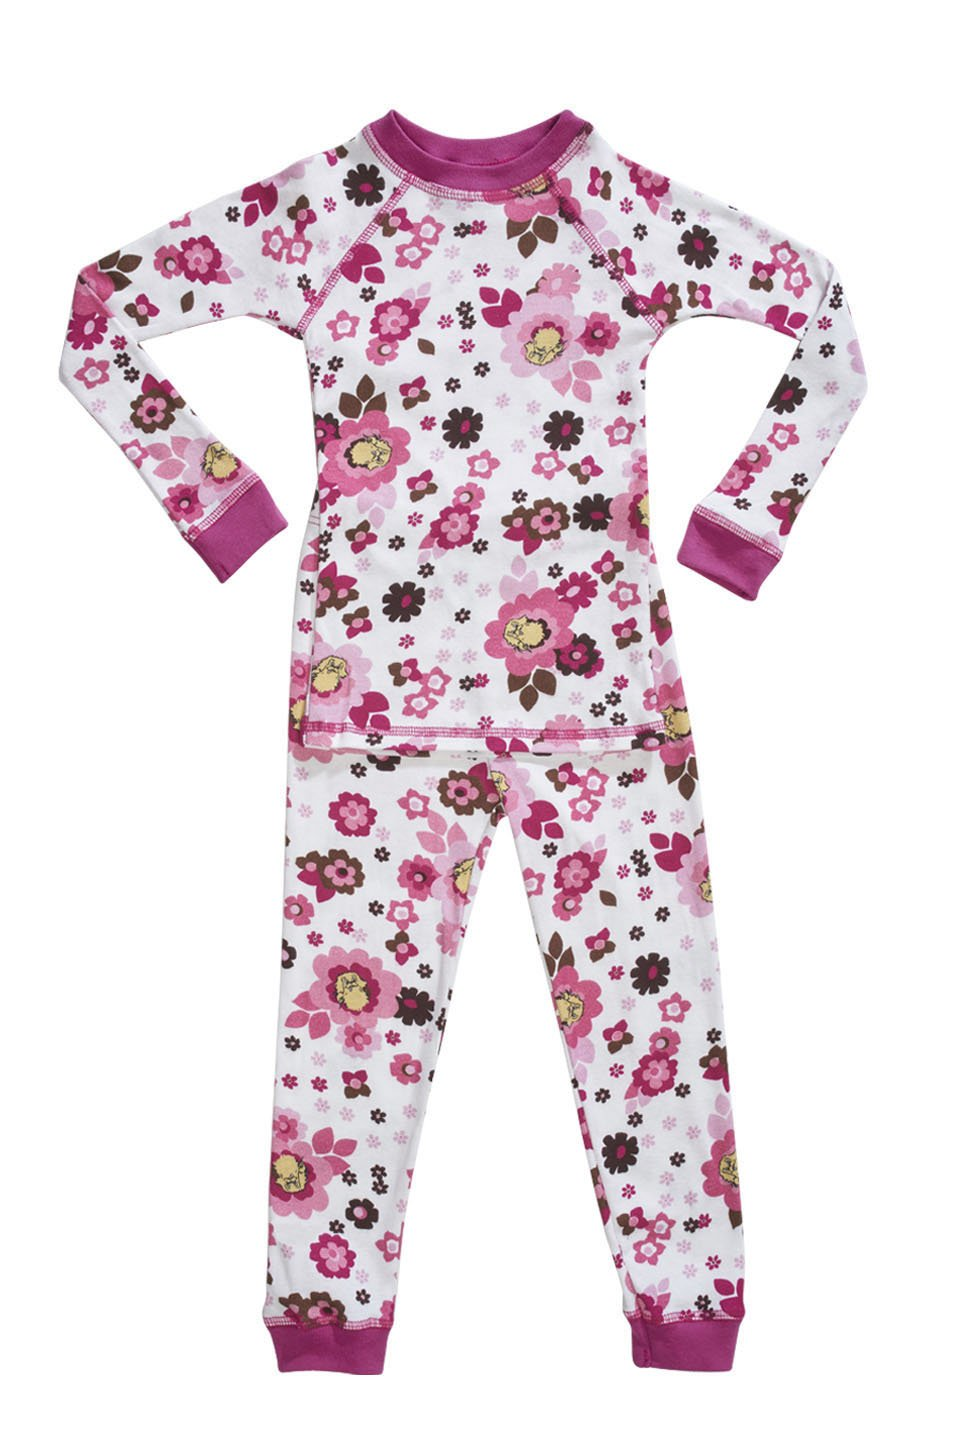 12 of the best kids pajamas (for all ages) October 11, It's that time of year where the sun sets earlier and the crisp air means cozy nights inside become a must.